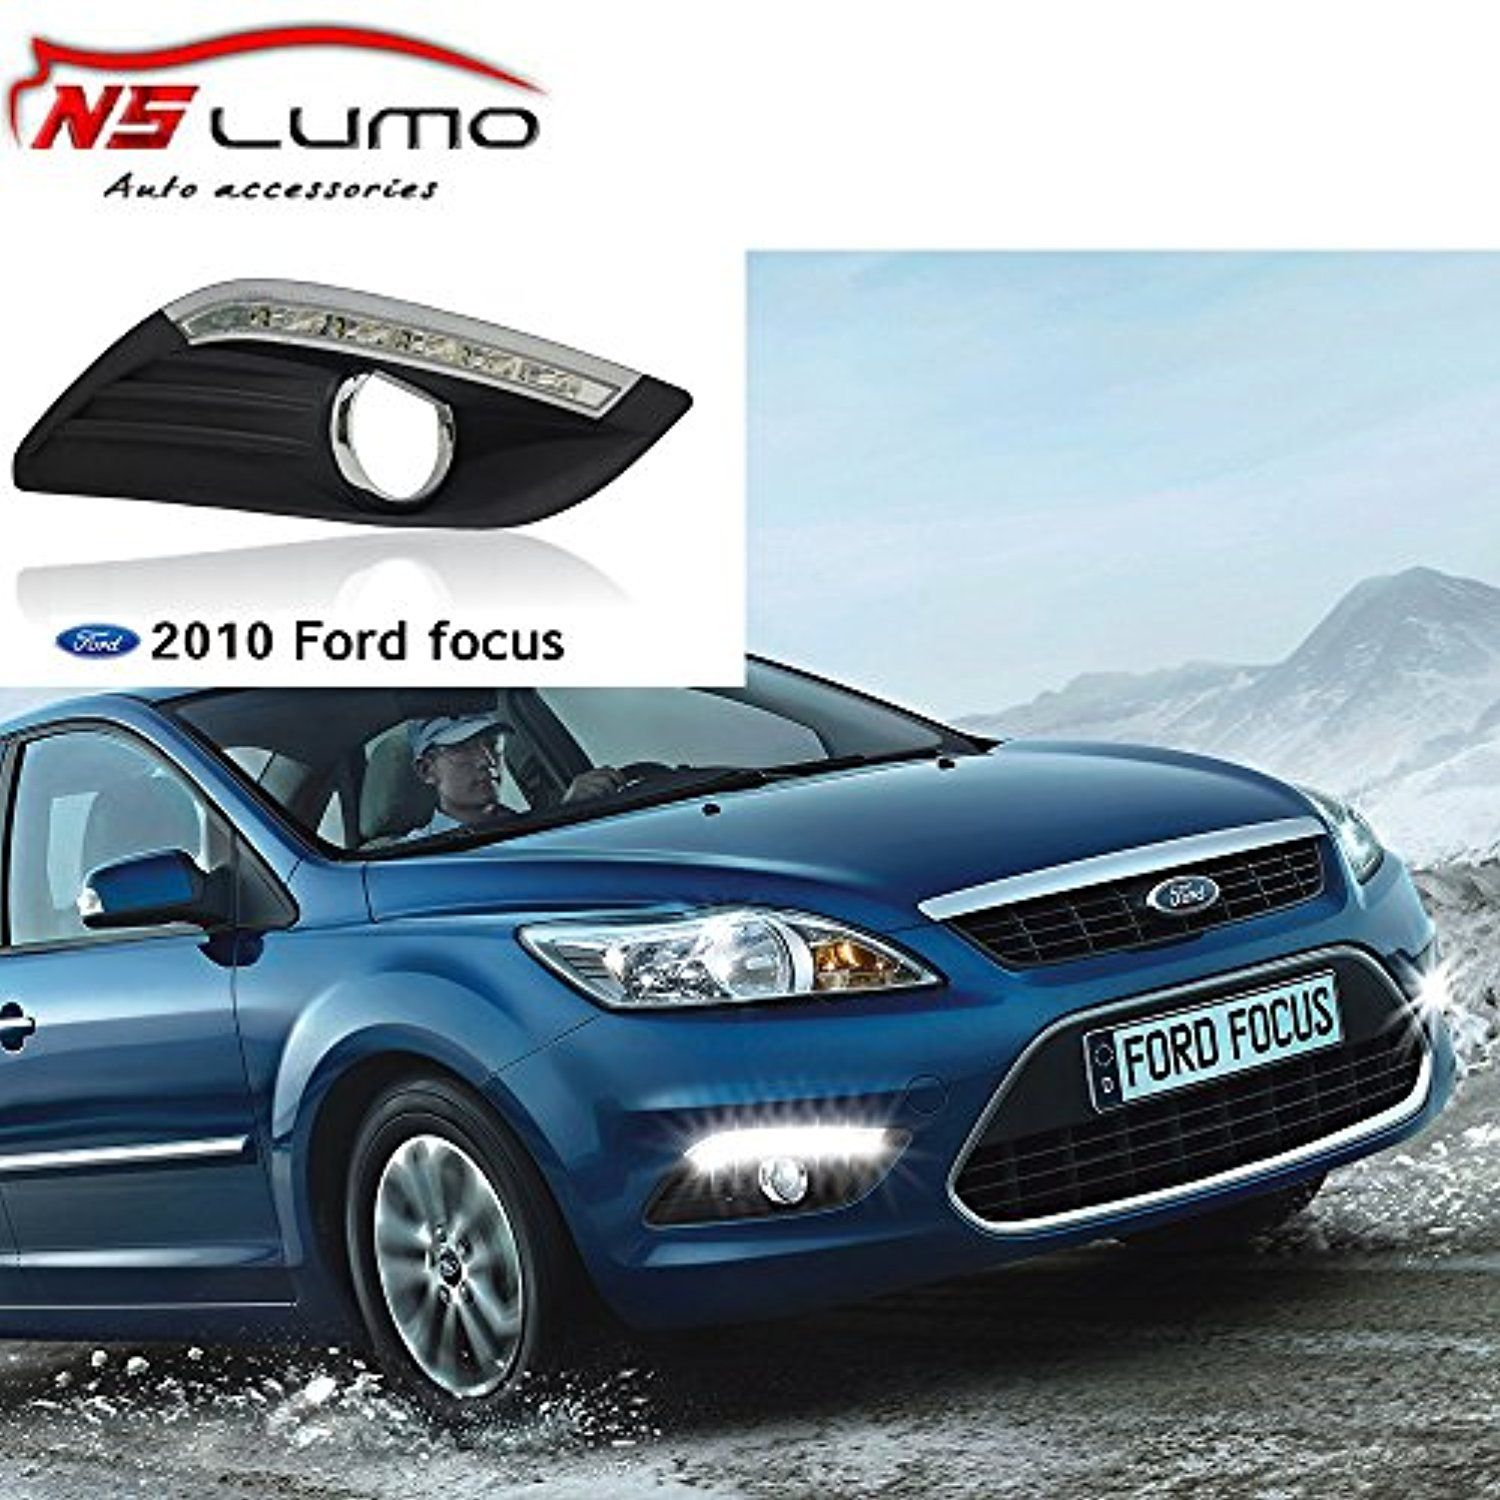 small resolution of nslumo led fog light daytime running light drl driving lamp for ford focus sedan 2009 2011 high configuration awesome products selected by anna